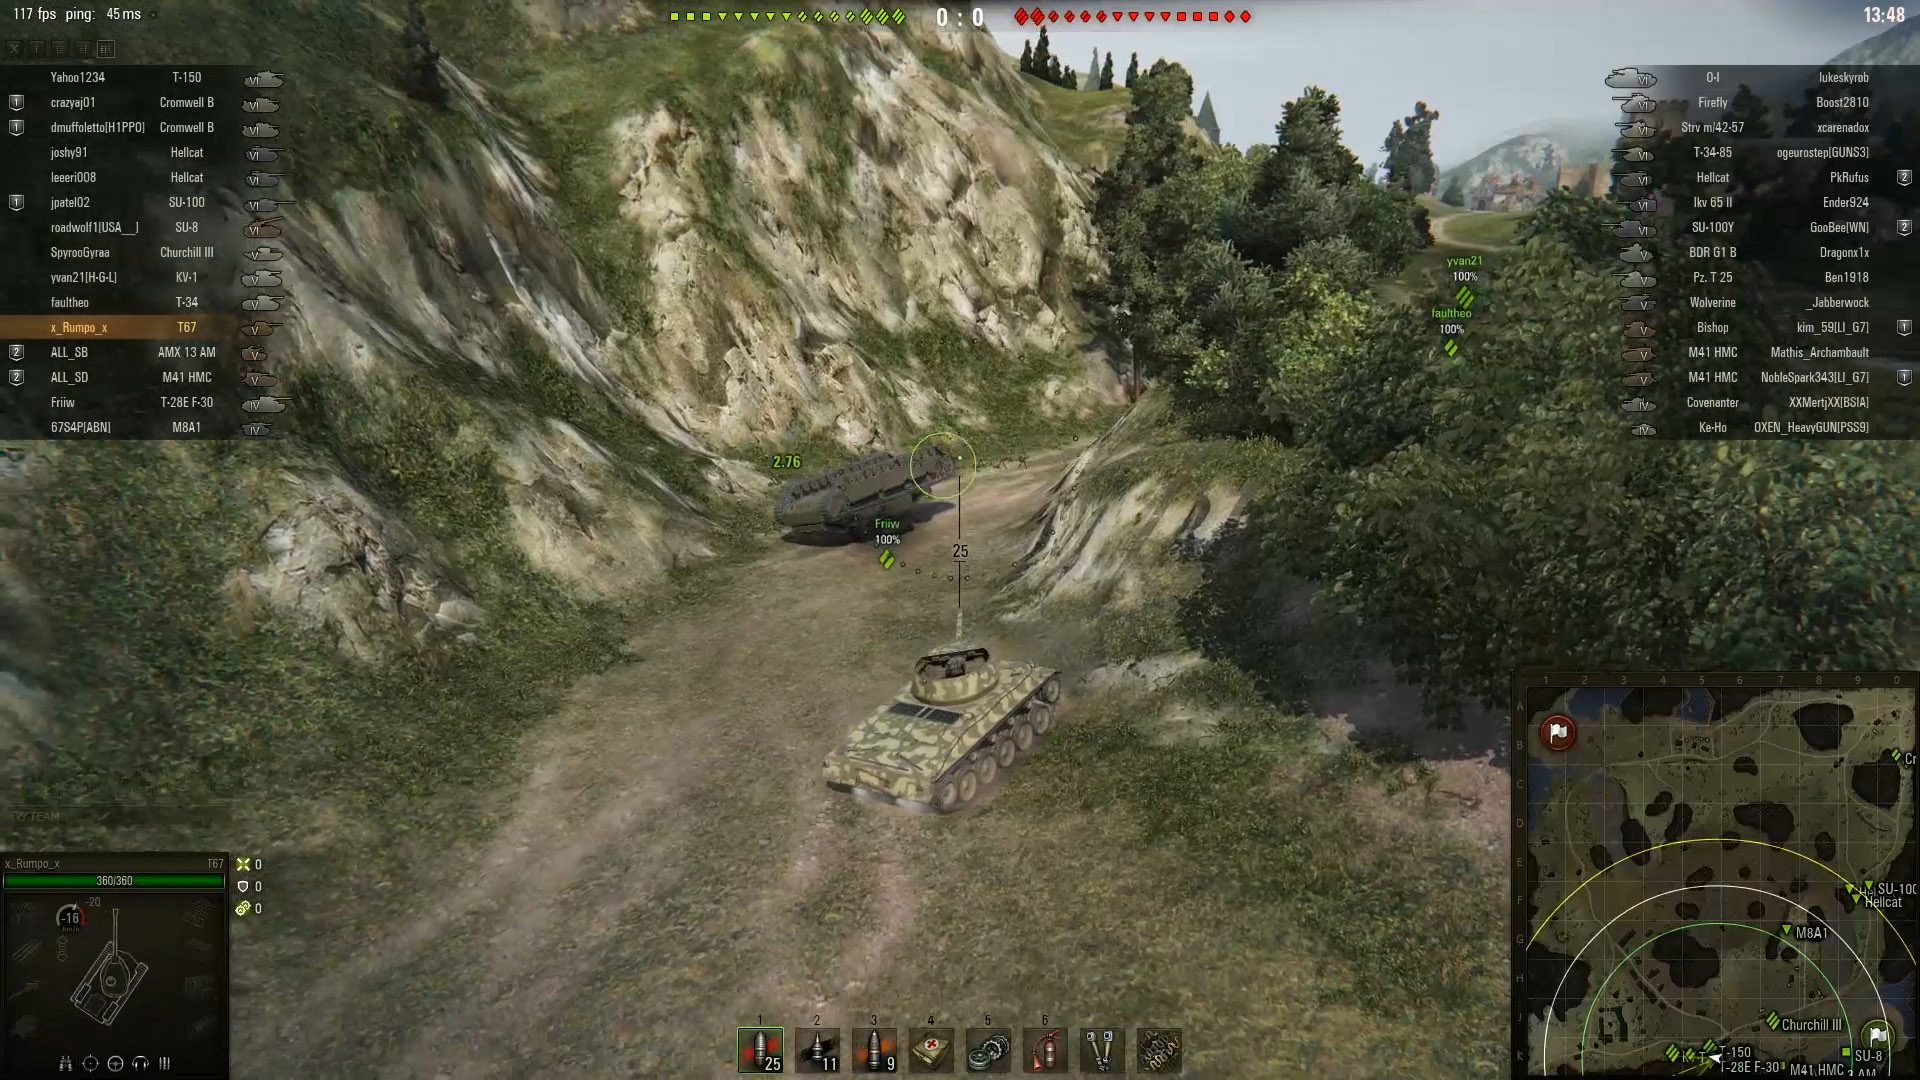 Flipping a tank is a rarity, but it certainly happens. Keep an eye out for flipped allies so you can help them get right-side up!